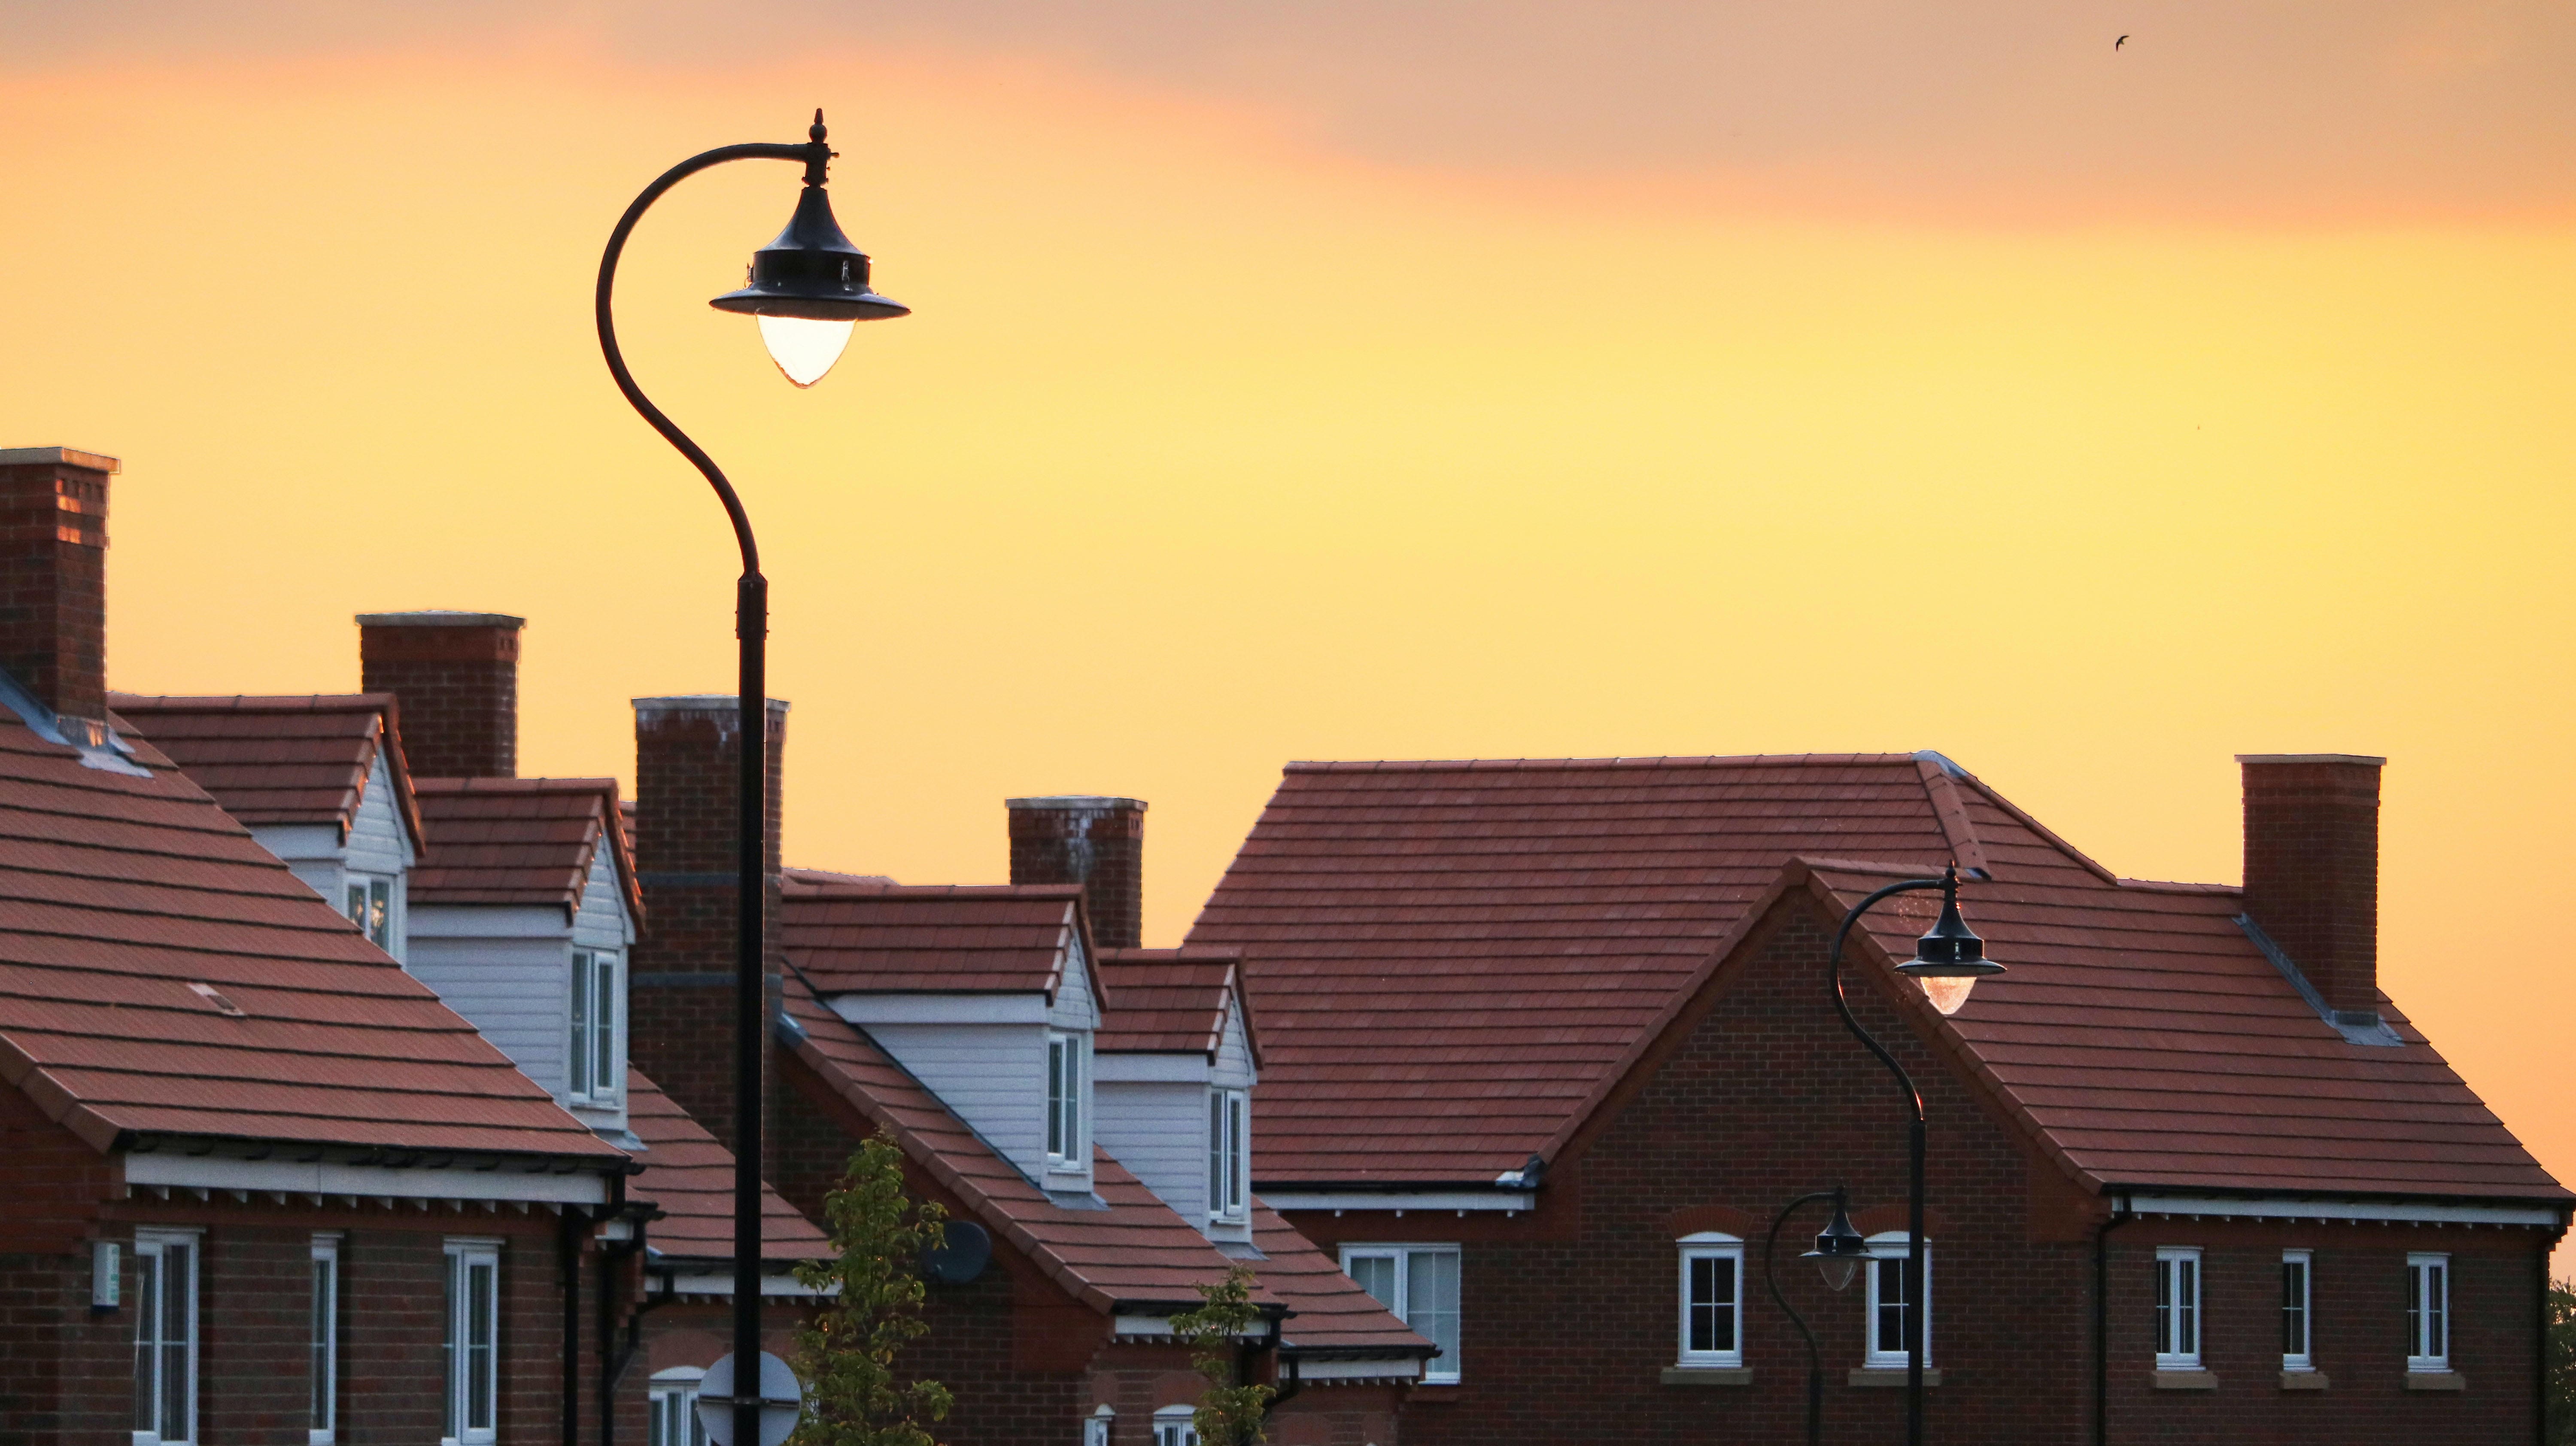 Sun setting over red-roofed village houses behind street lamp